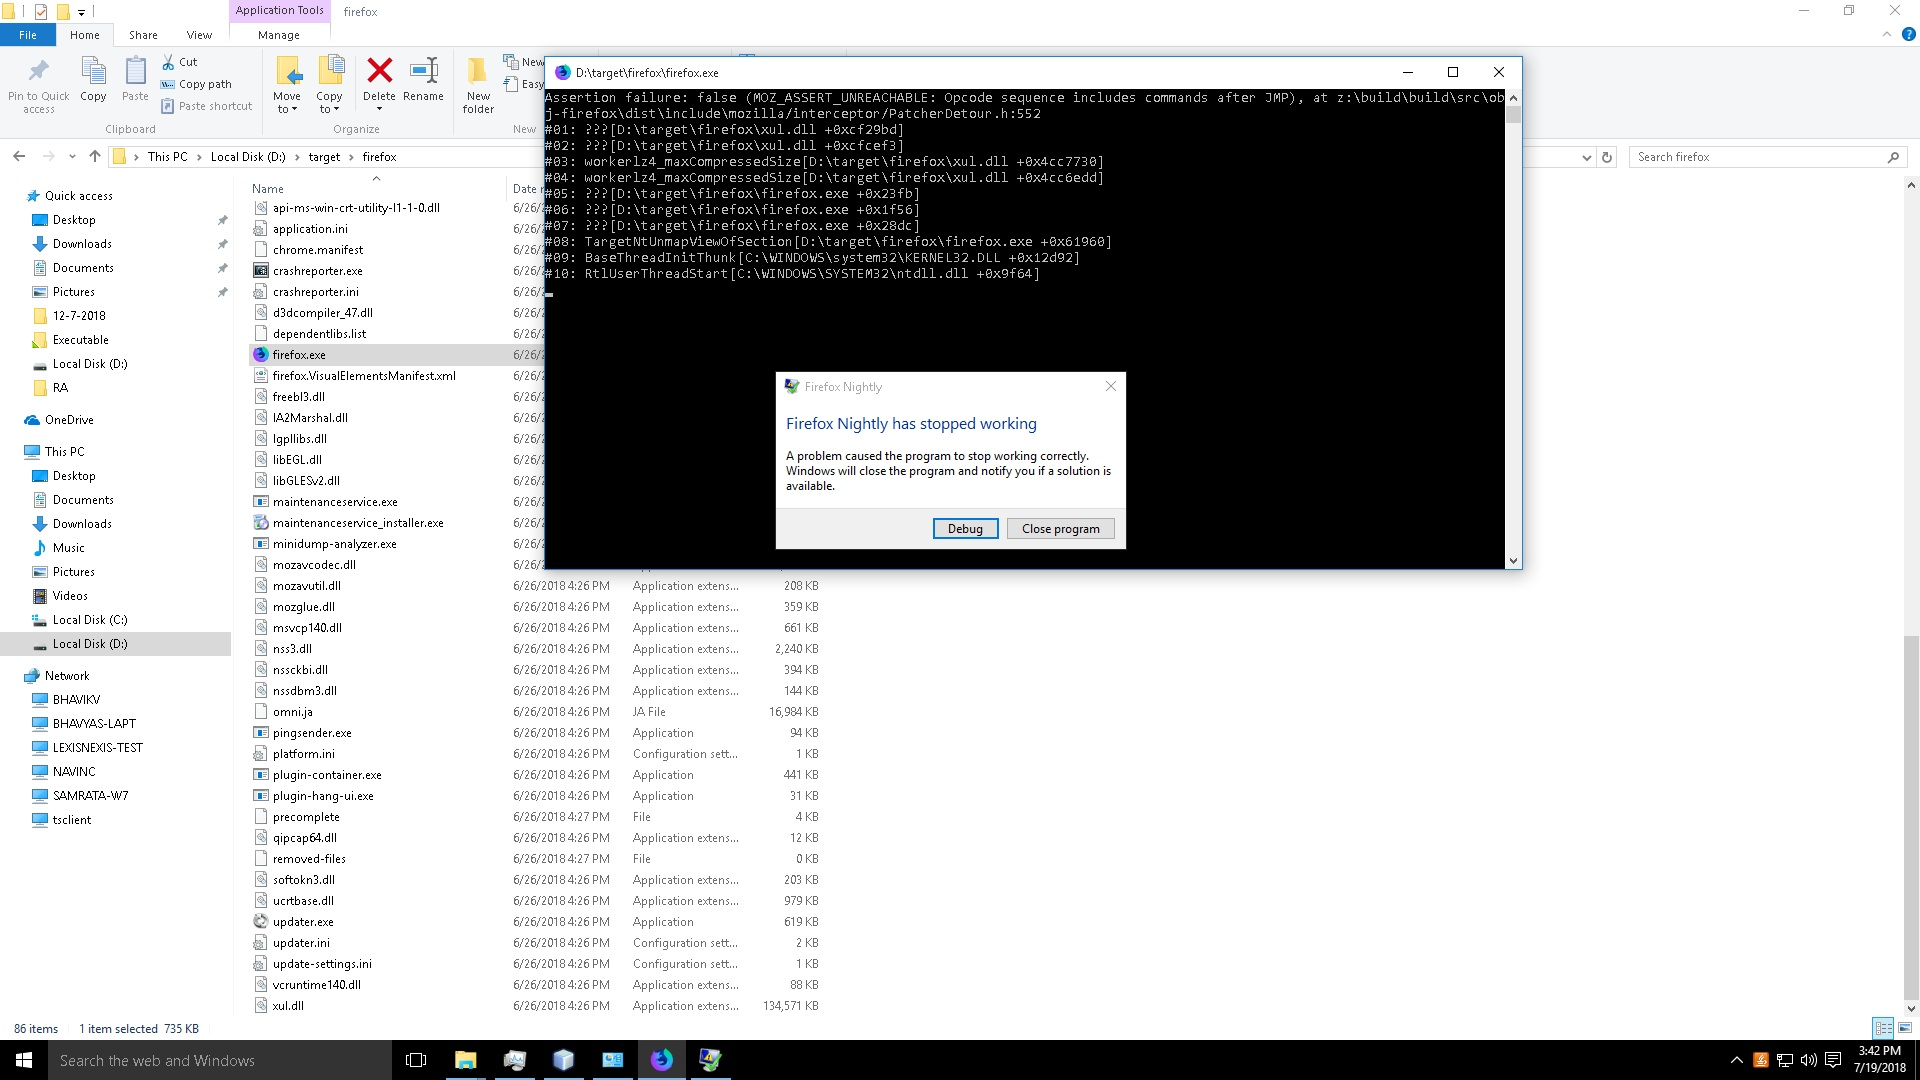 Connection refused error because the GFX sanity window of Firefox